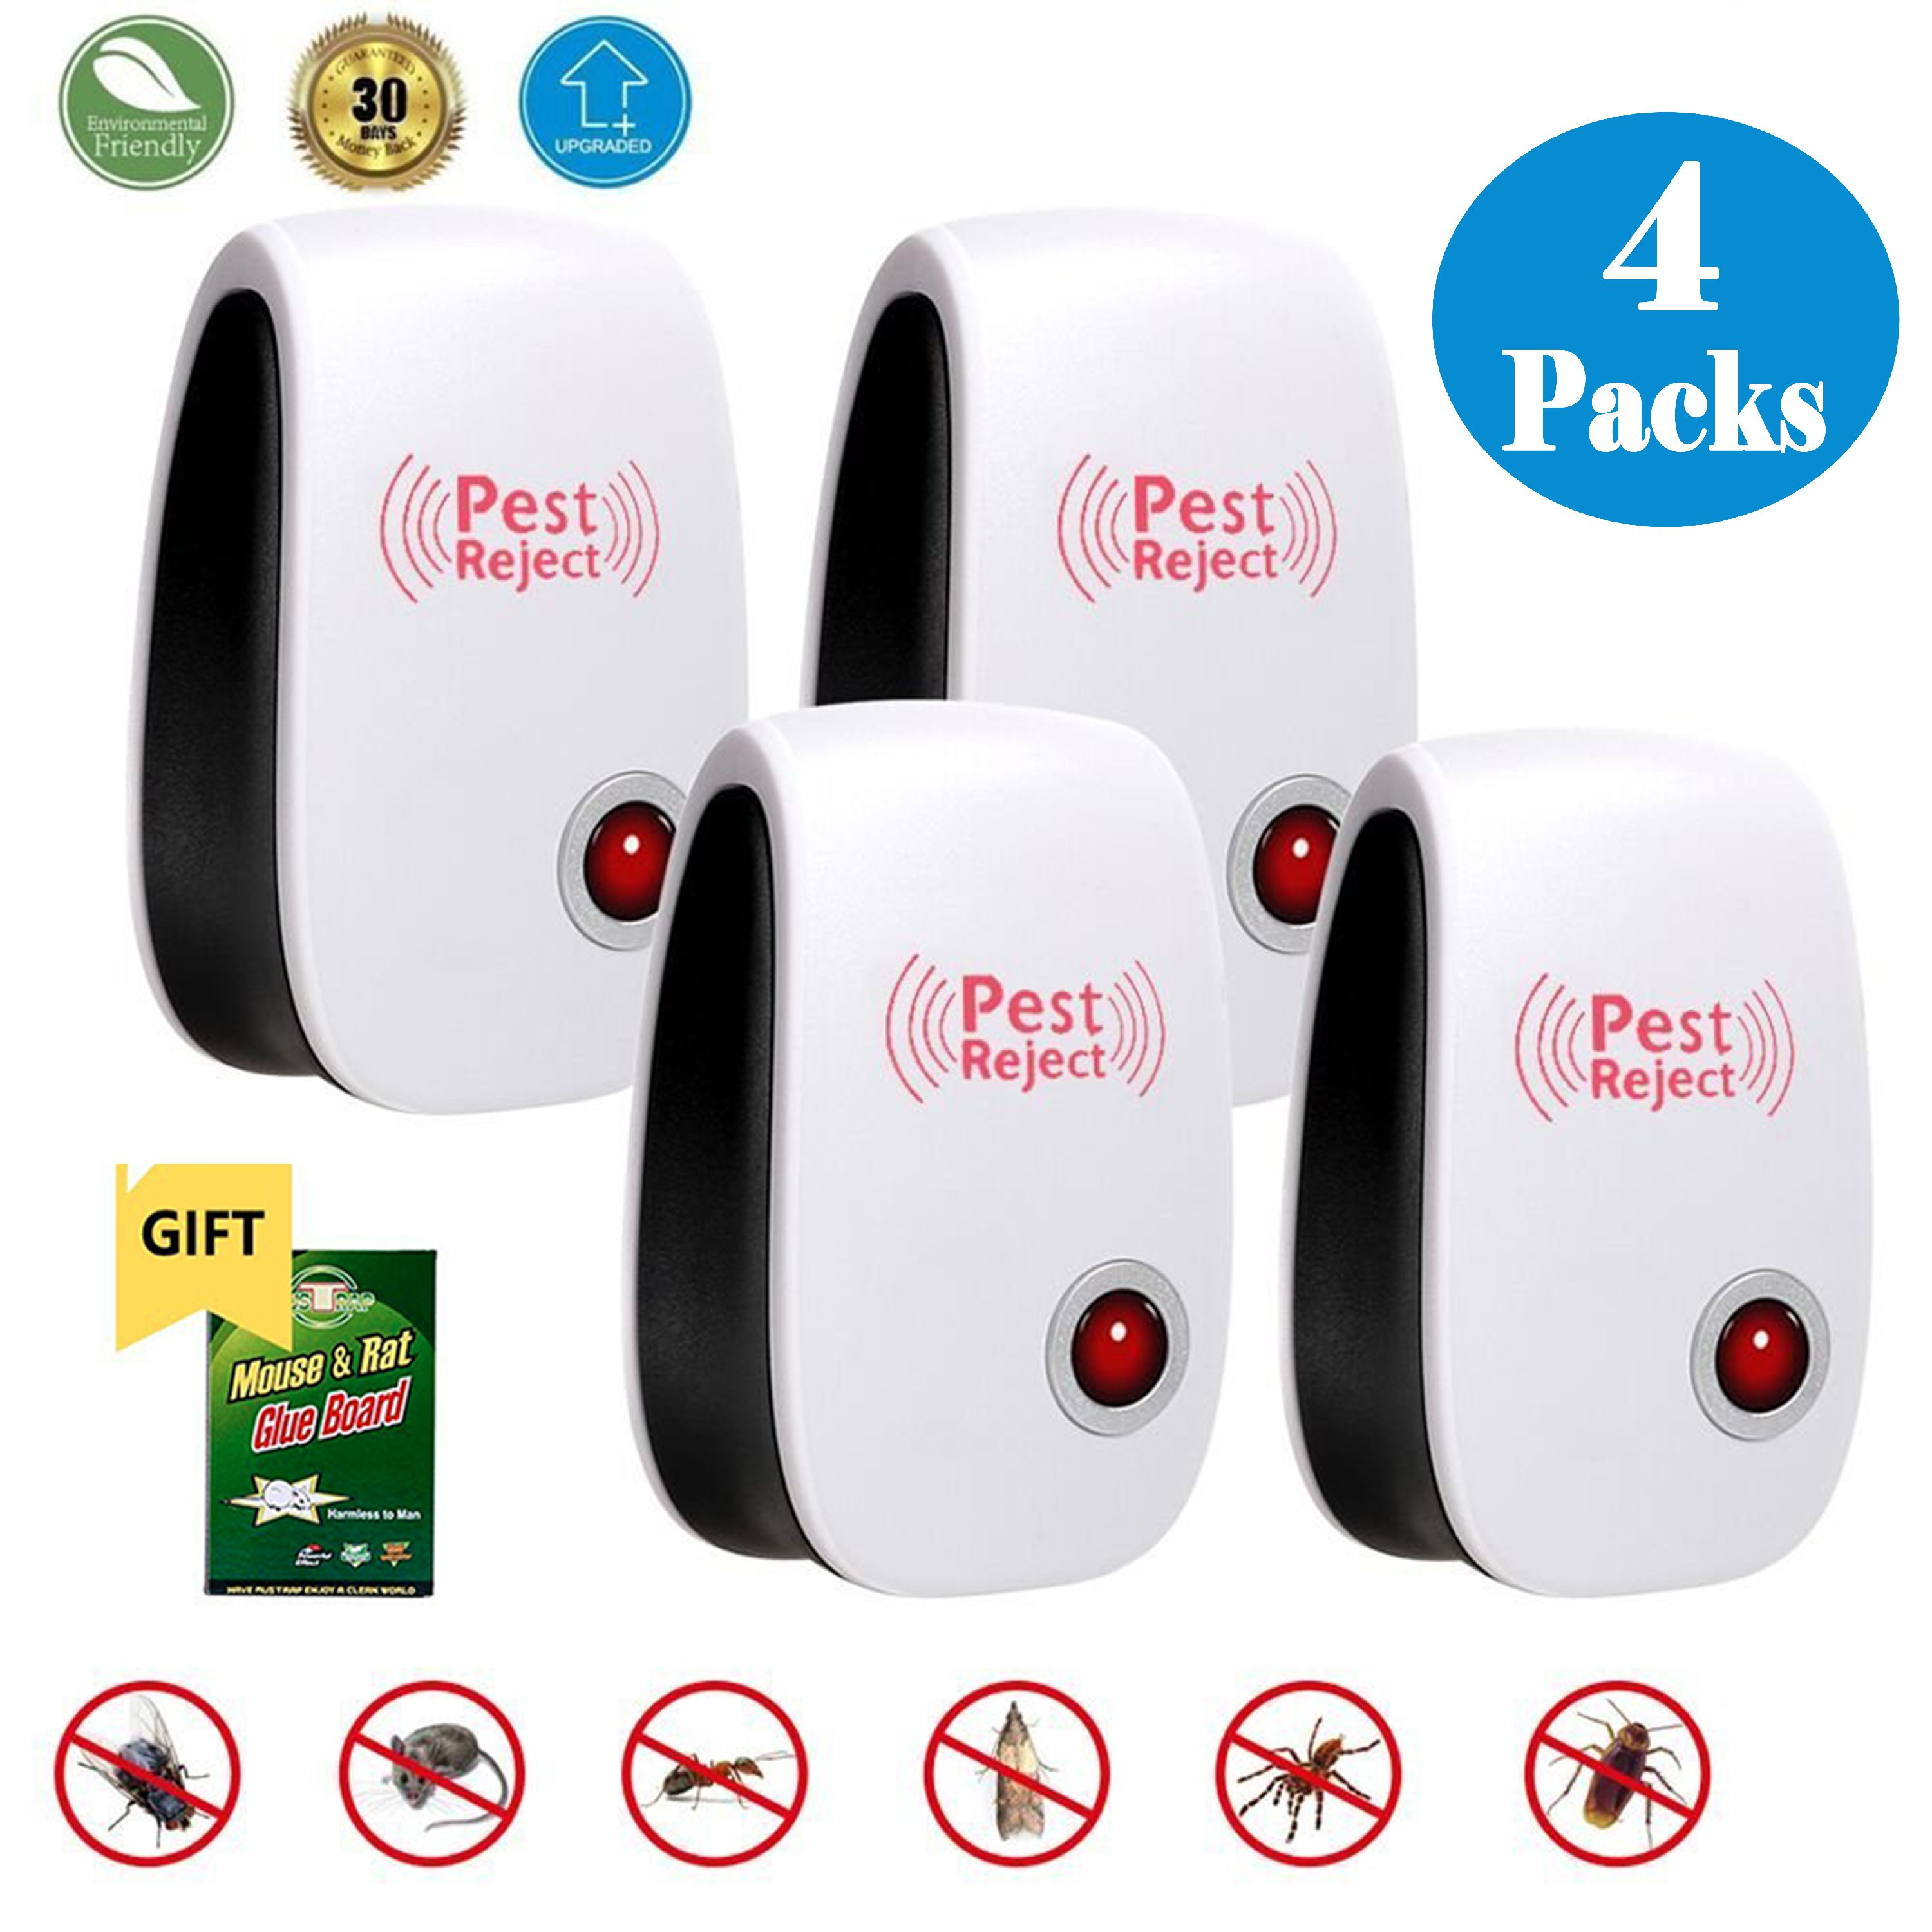 Ultrasonic Pest Repeller - 4 Pack Electronic Plug In Pest Control - Pest Reject for Mosquitoes, Mice, Ants, Roaches, Spiders, Flies, Bugs, Lizards, Non-toxic Eco-Friendly, Human & Pet Safe